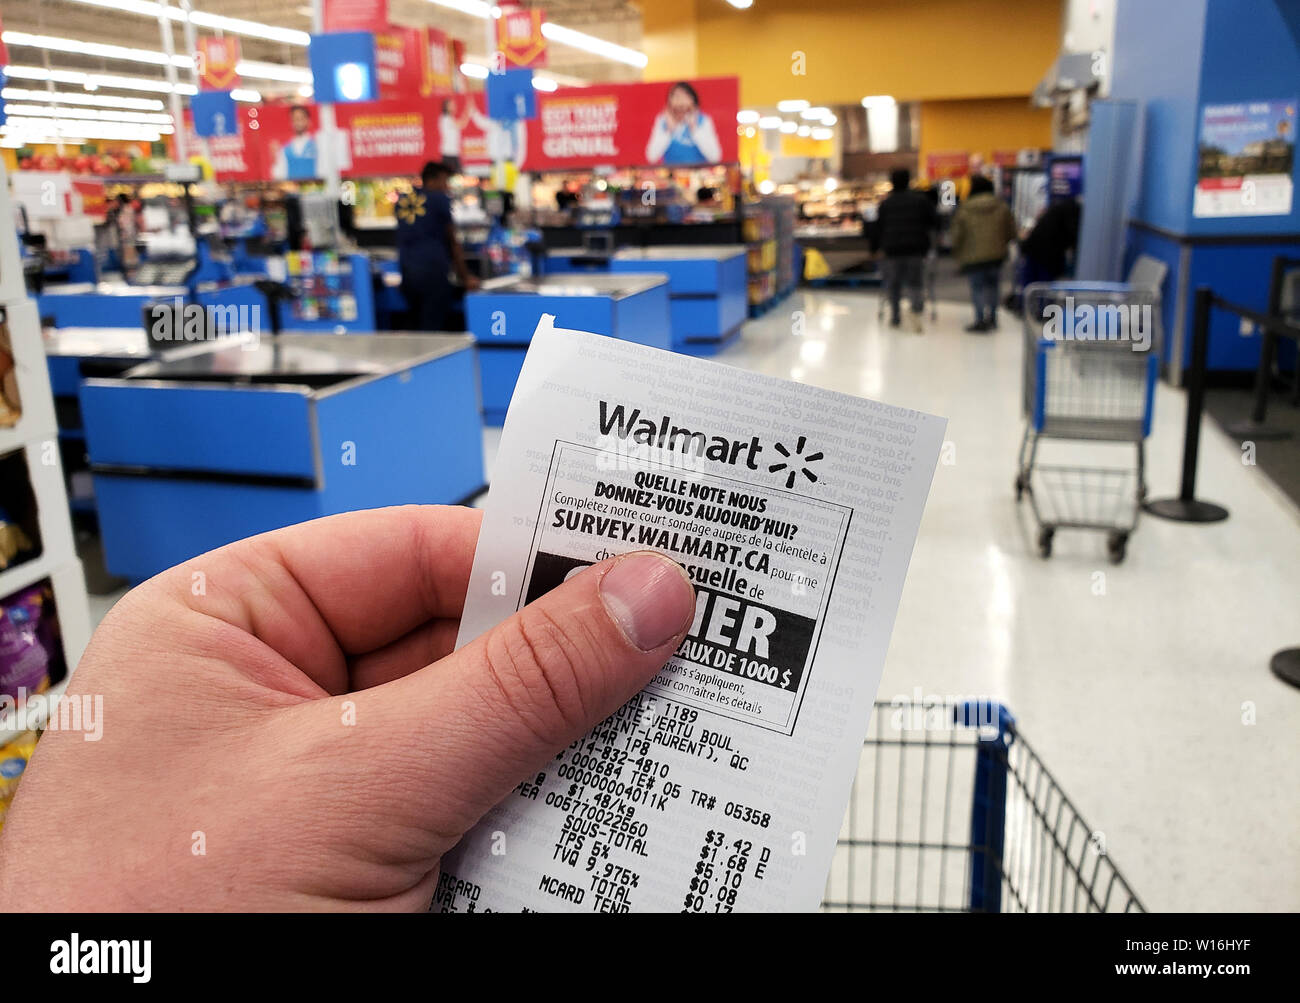 Walmart Check Out Stock Photos & Walmart Check Out Stock Images - Alamy